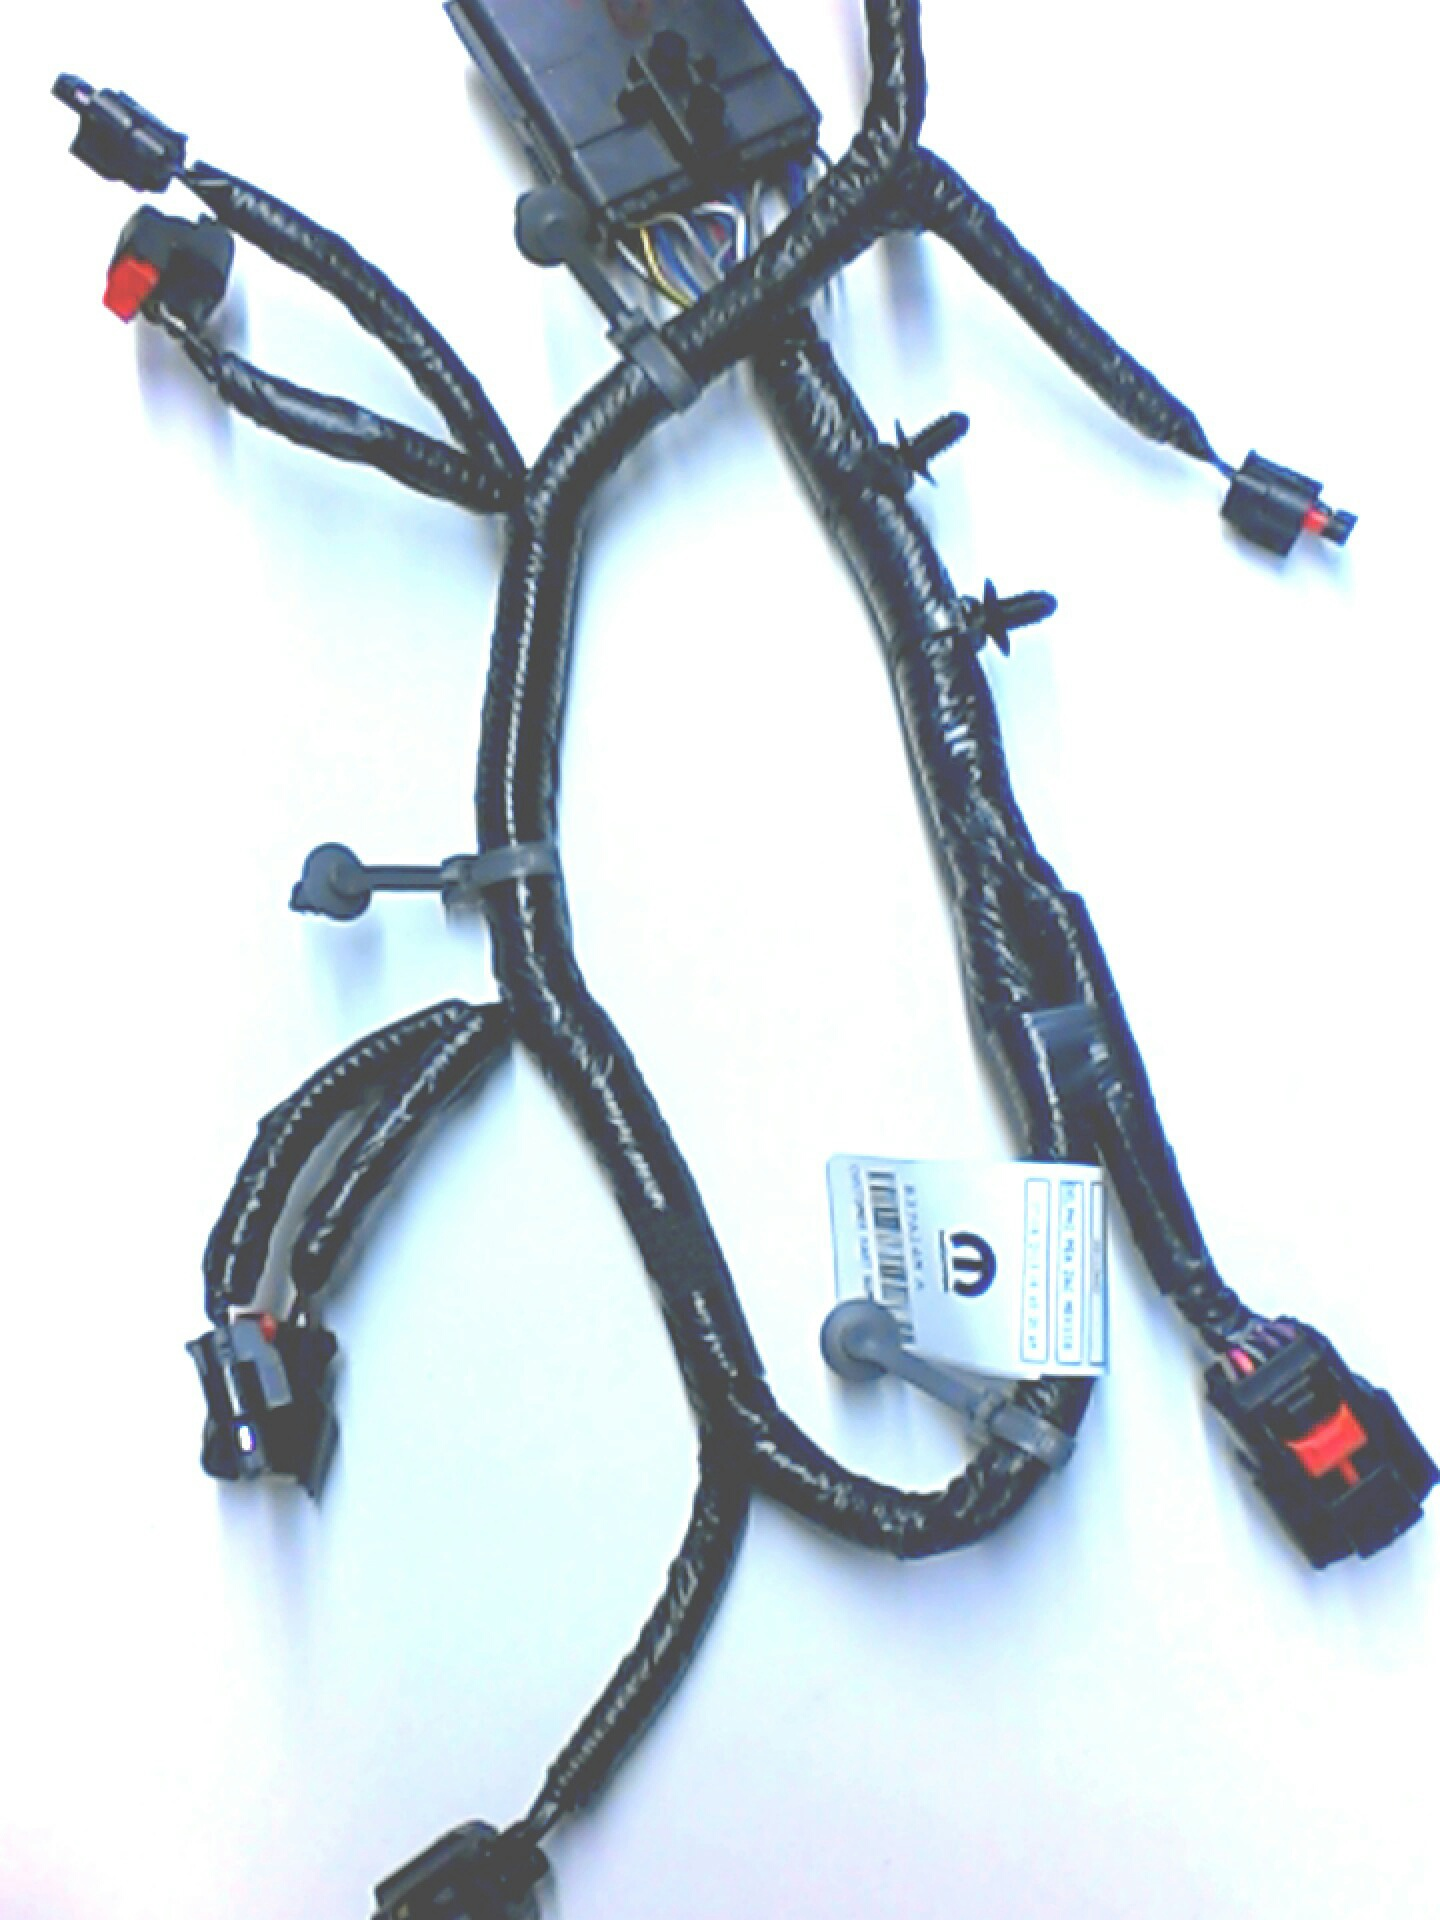 1997 Dodge Ram 1500 Engine Wiring Harness : Dodge ram engine wiring harness